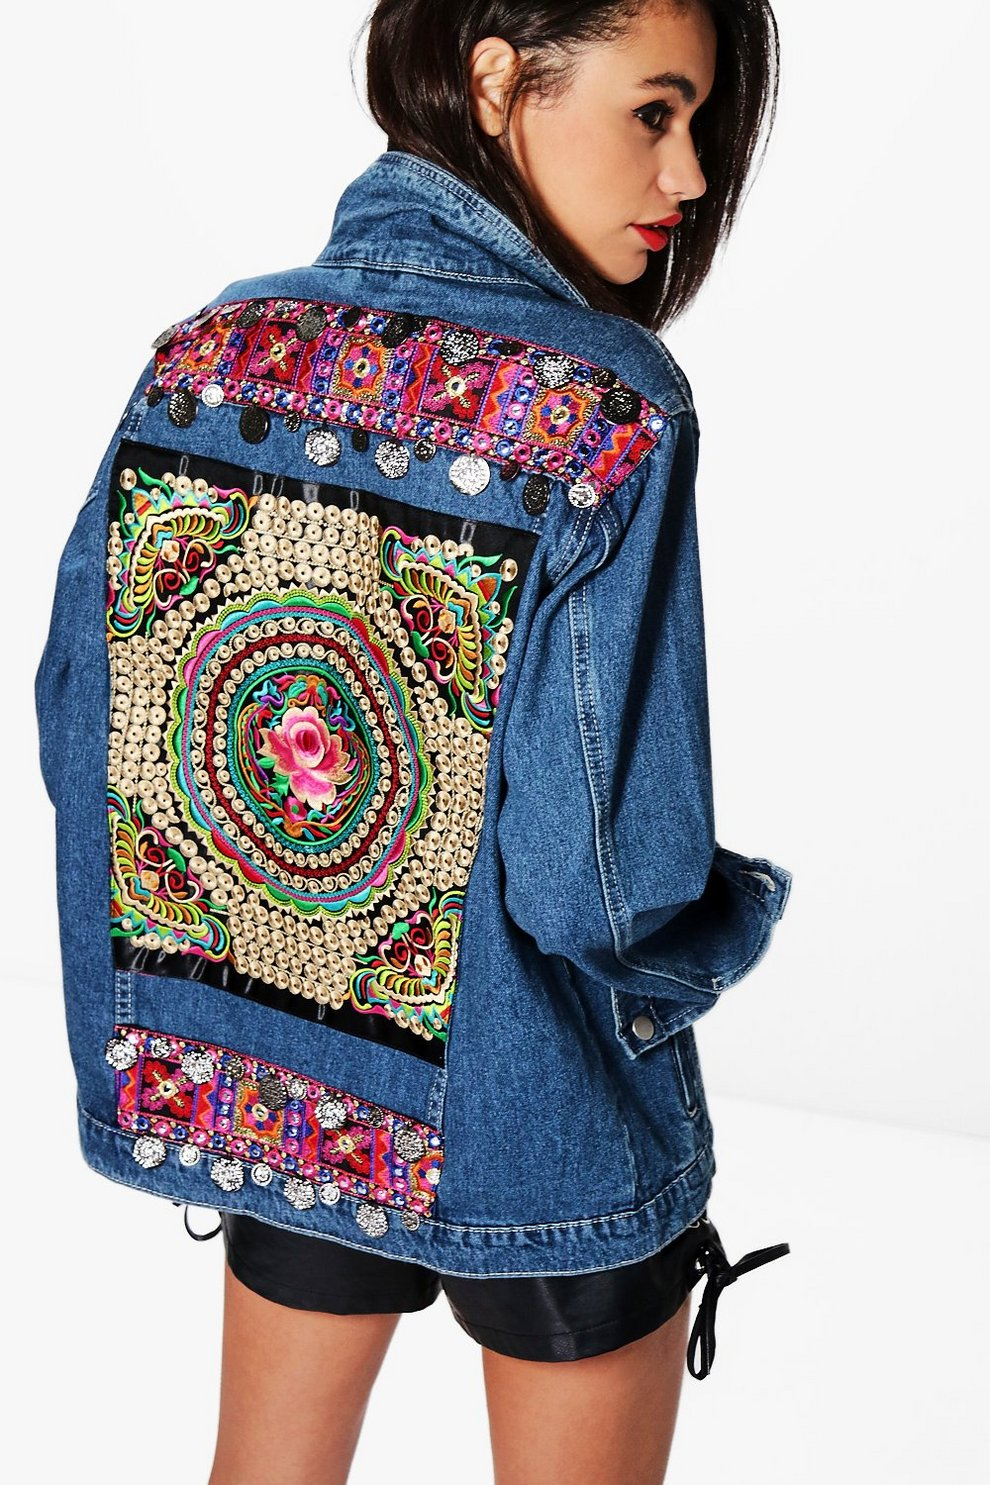 ddb13a02fc0 Embellished Denim Festival Jacket